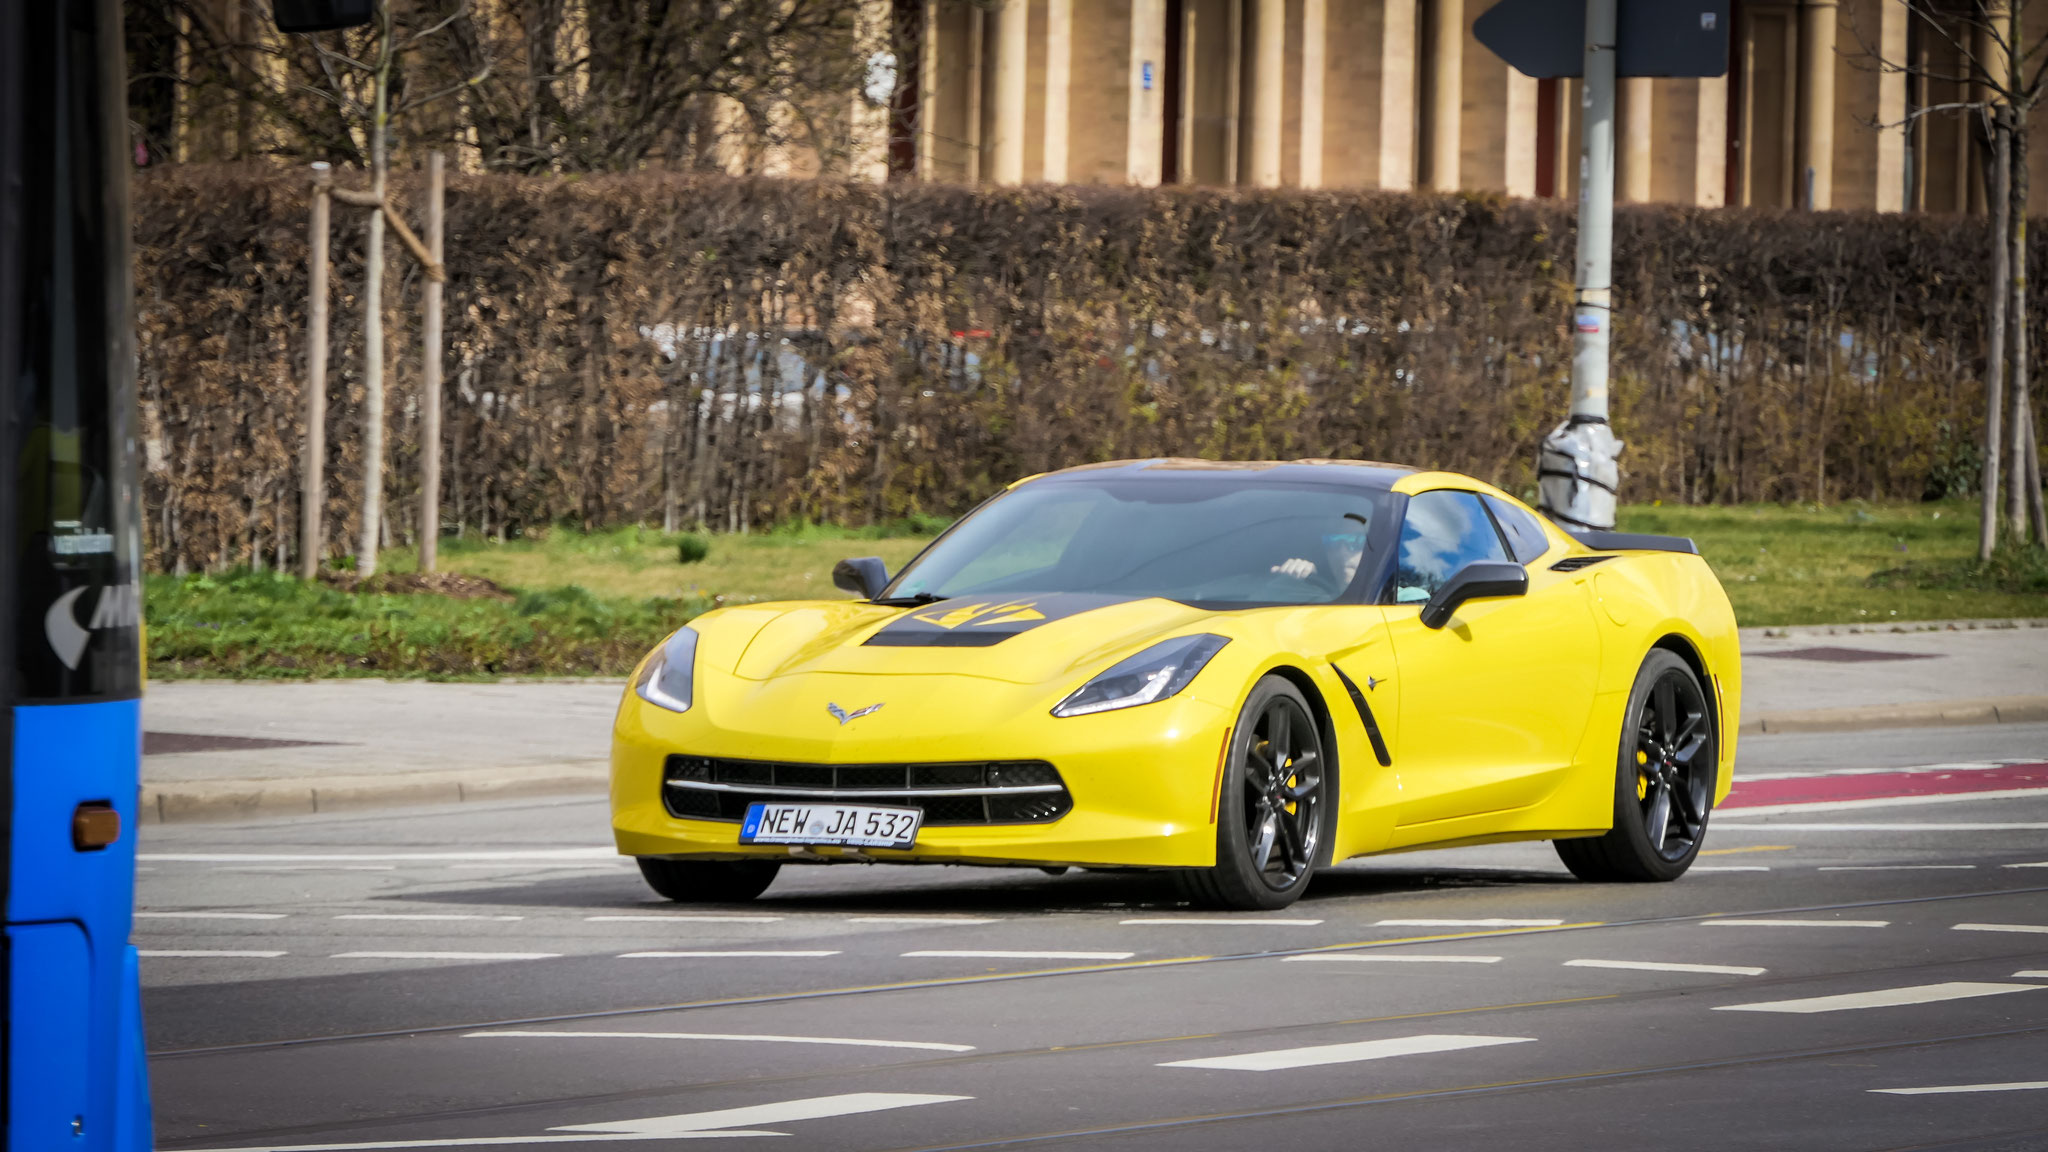 Chevrolet Corvette C7 Stingray - NEW-JA-532